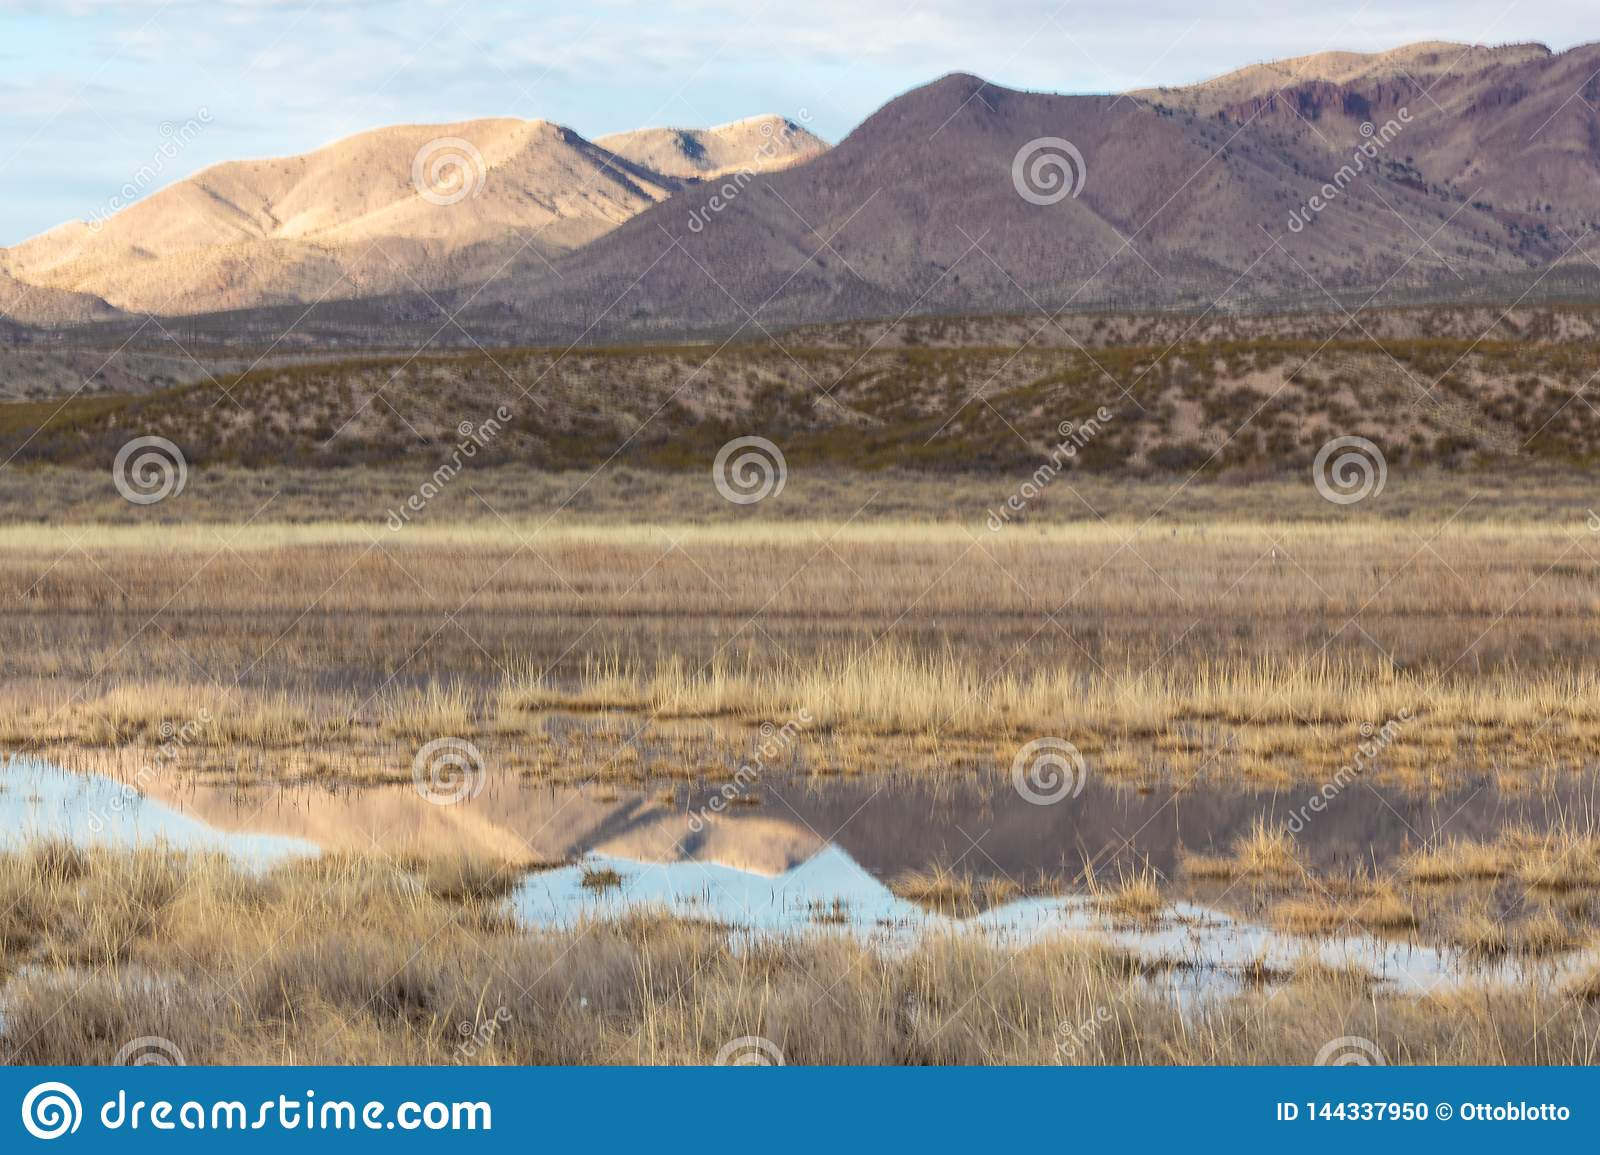 Bosque del Apache view of New Mexico mountains and reflections in winter landscape